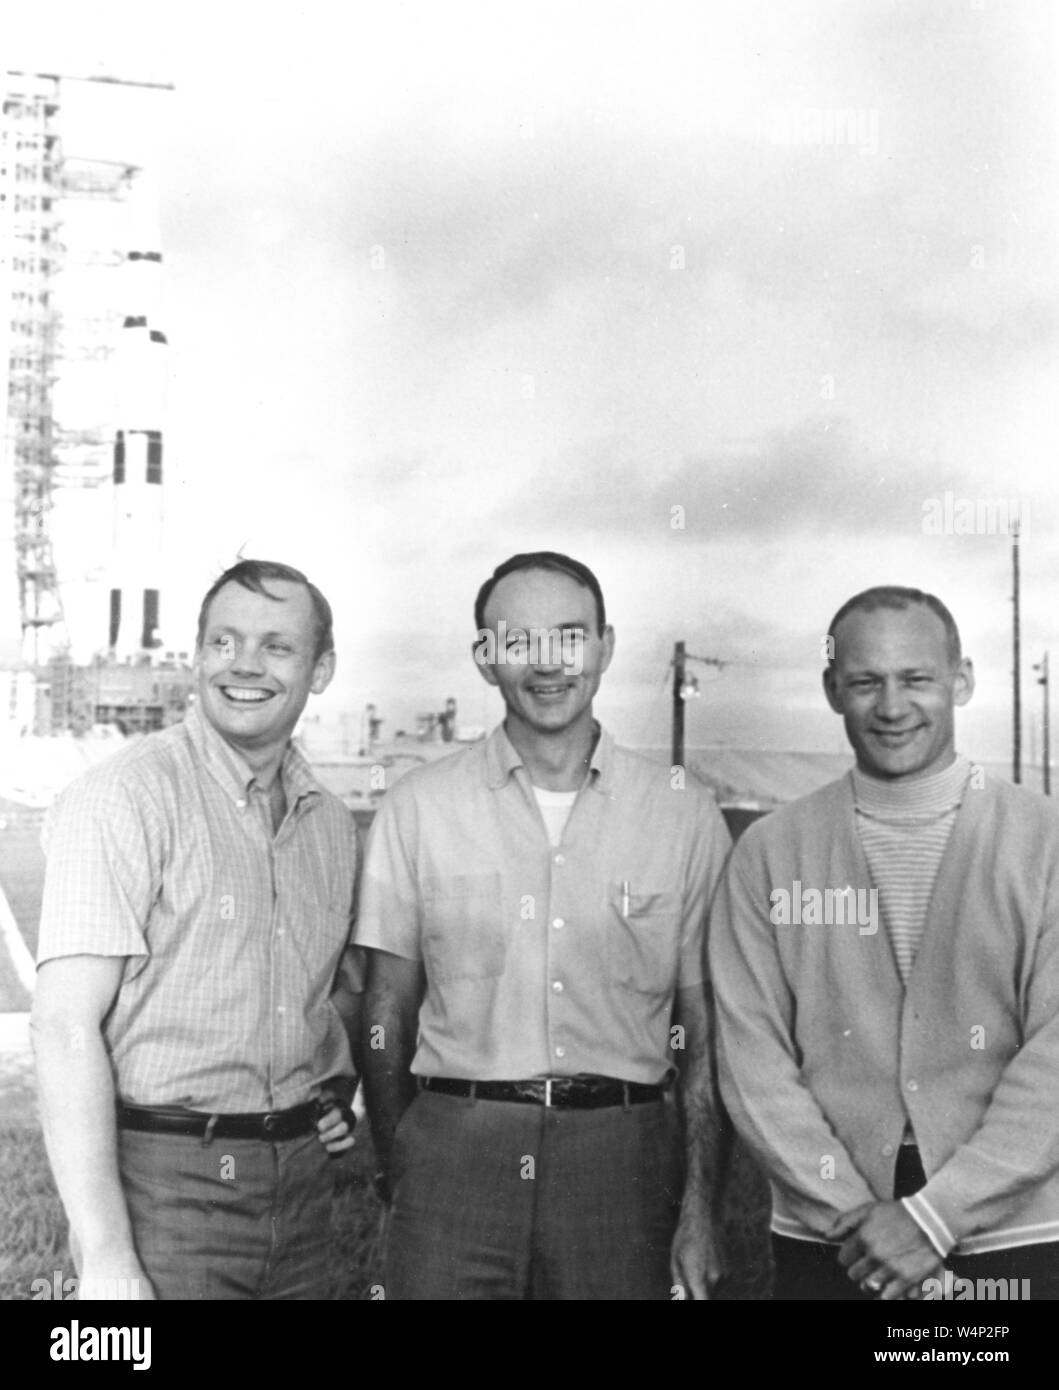 NASA's Apollo 11 flight crew, Neil A Armstrong, Michael Collins, and Buzz Aldrin, stand near the Apollo/Saturn V at Kennedy Space Center in Florida, July 16, 1969. Image courtesy National Aeronautics and Space Administration (NASA). () Stock Photo